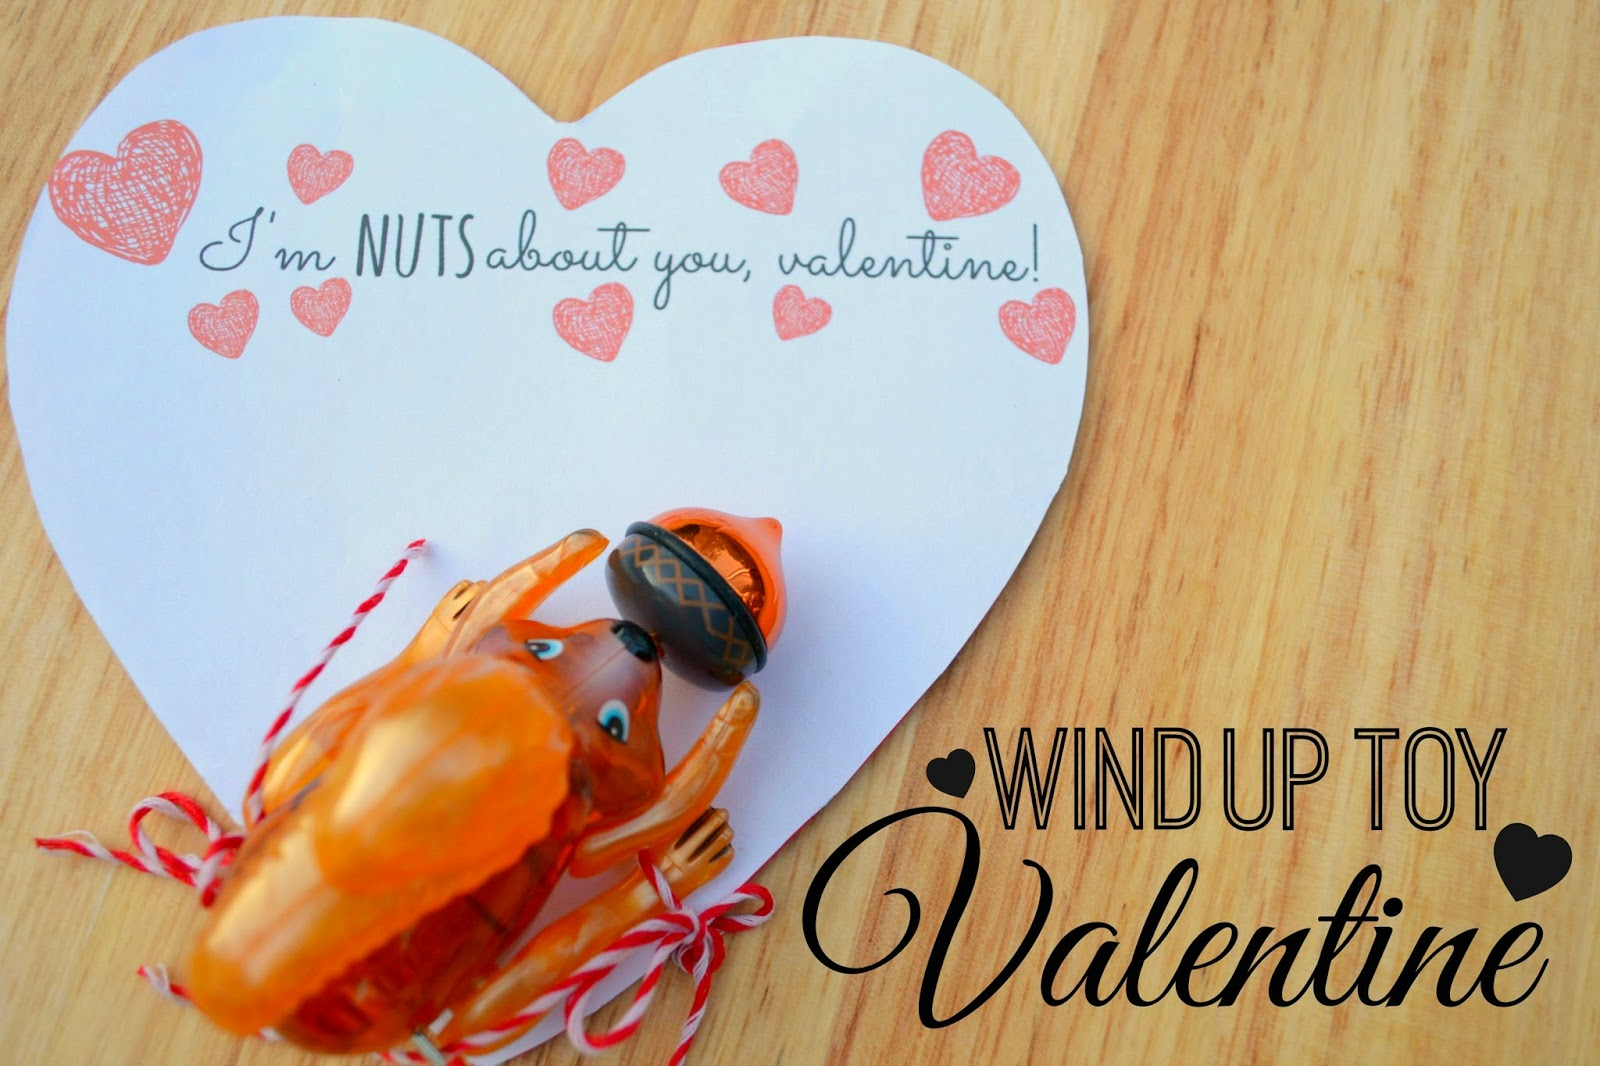 Mommy Testers, wind up toy valentine, zwindups valentine, squirrel valentine, nuts about you valentine, Kids toy valentine